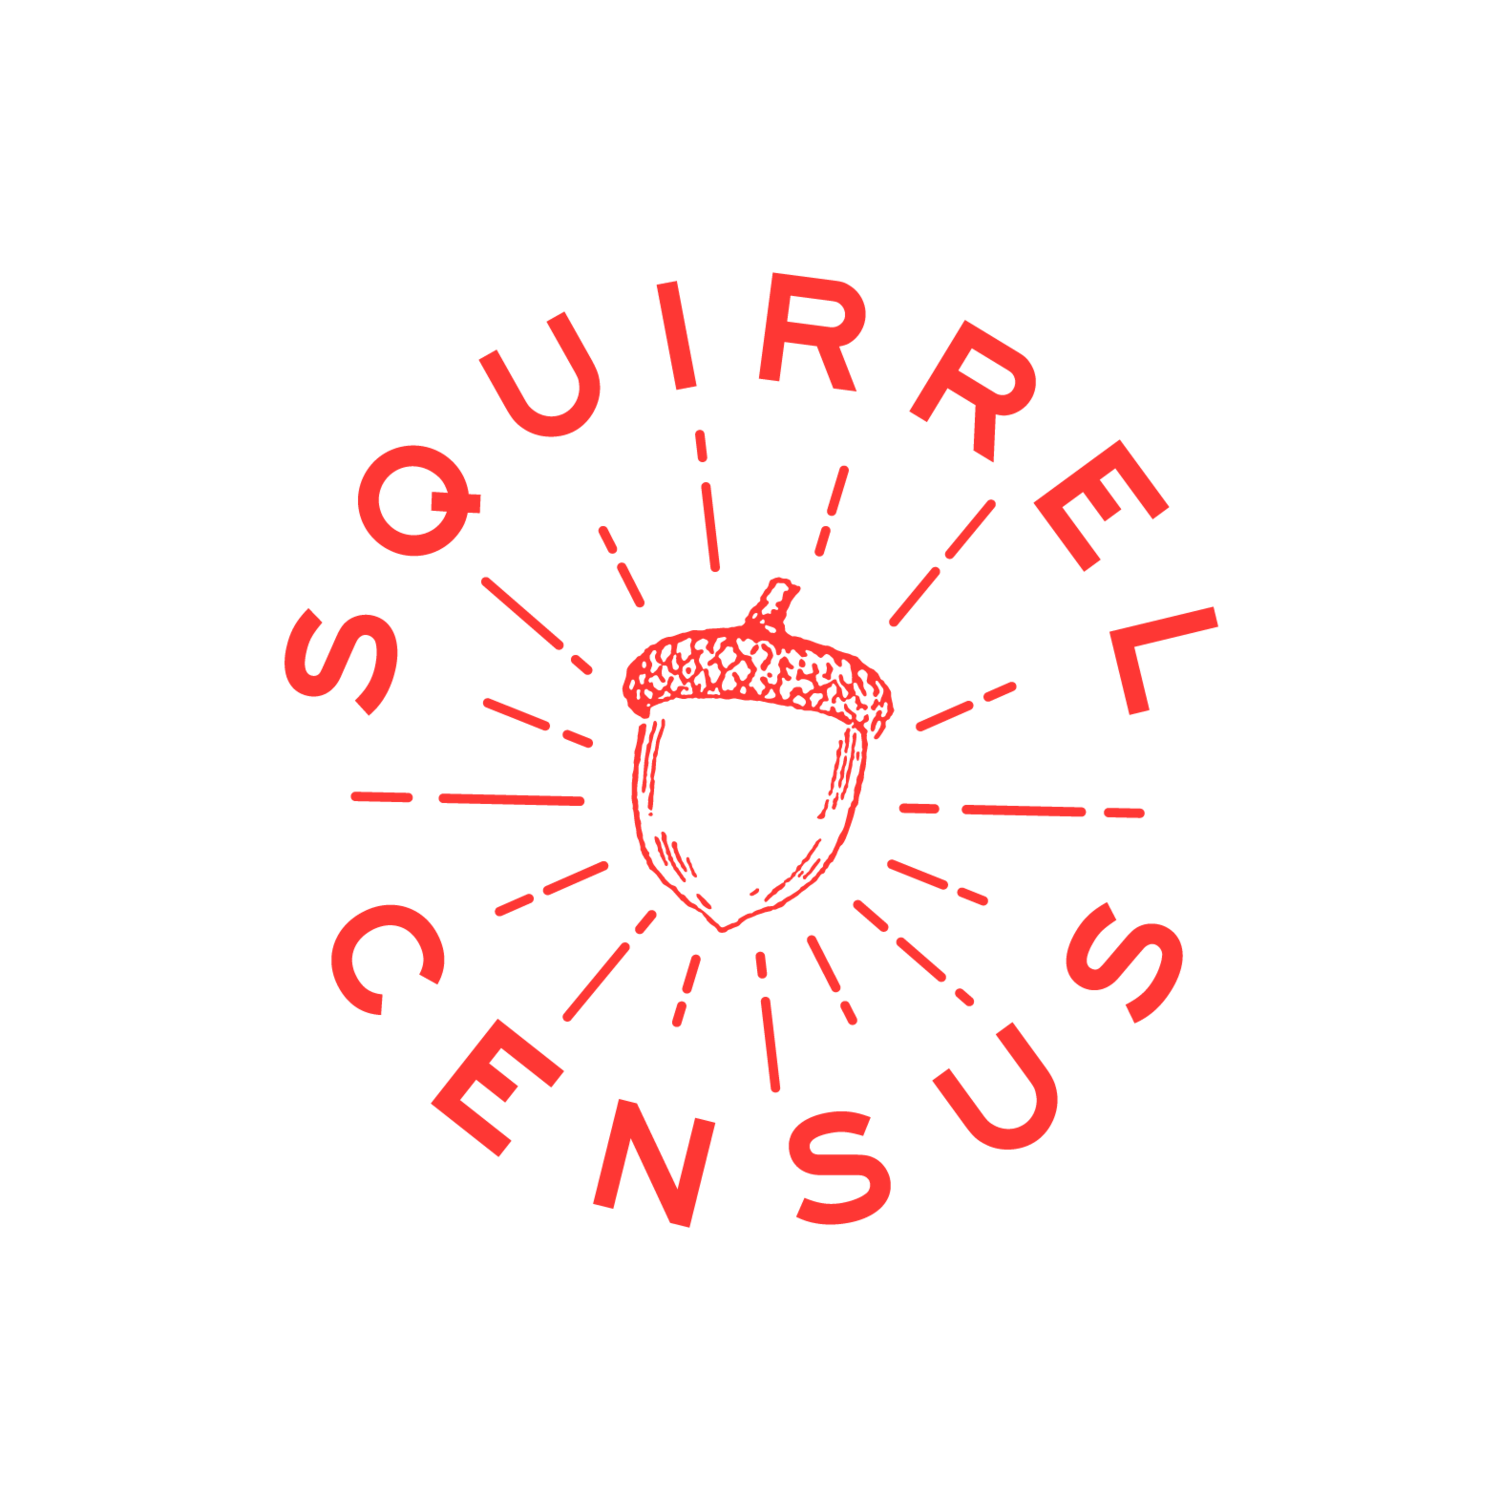 The Squirrel Census